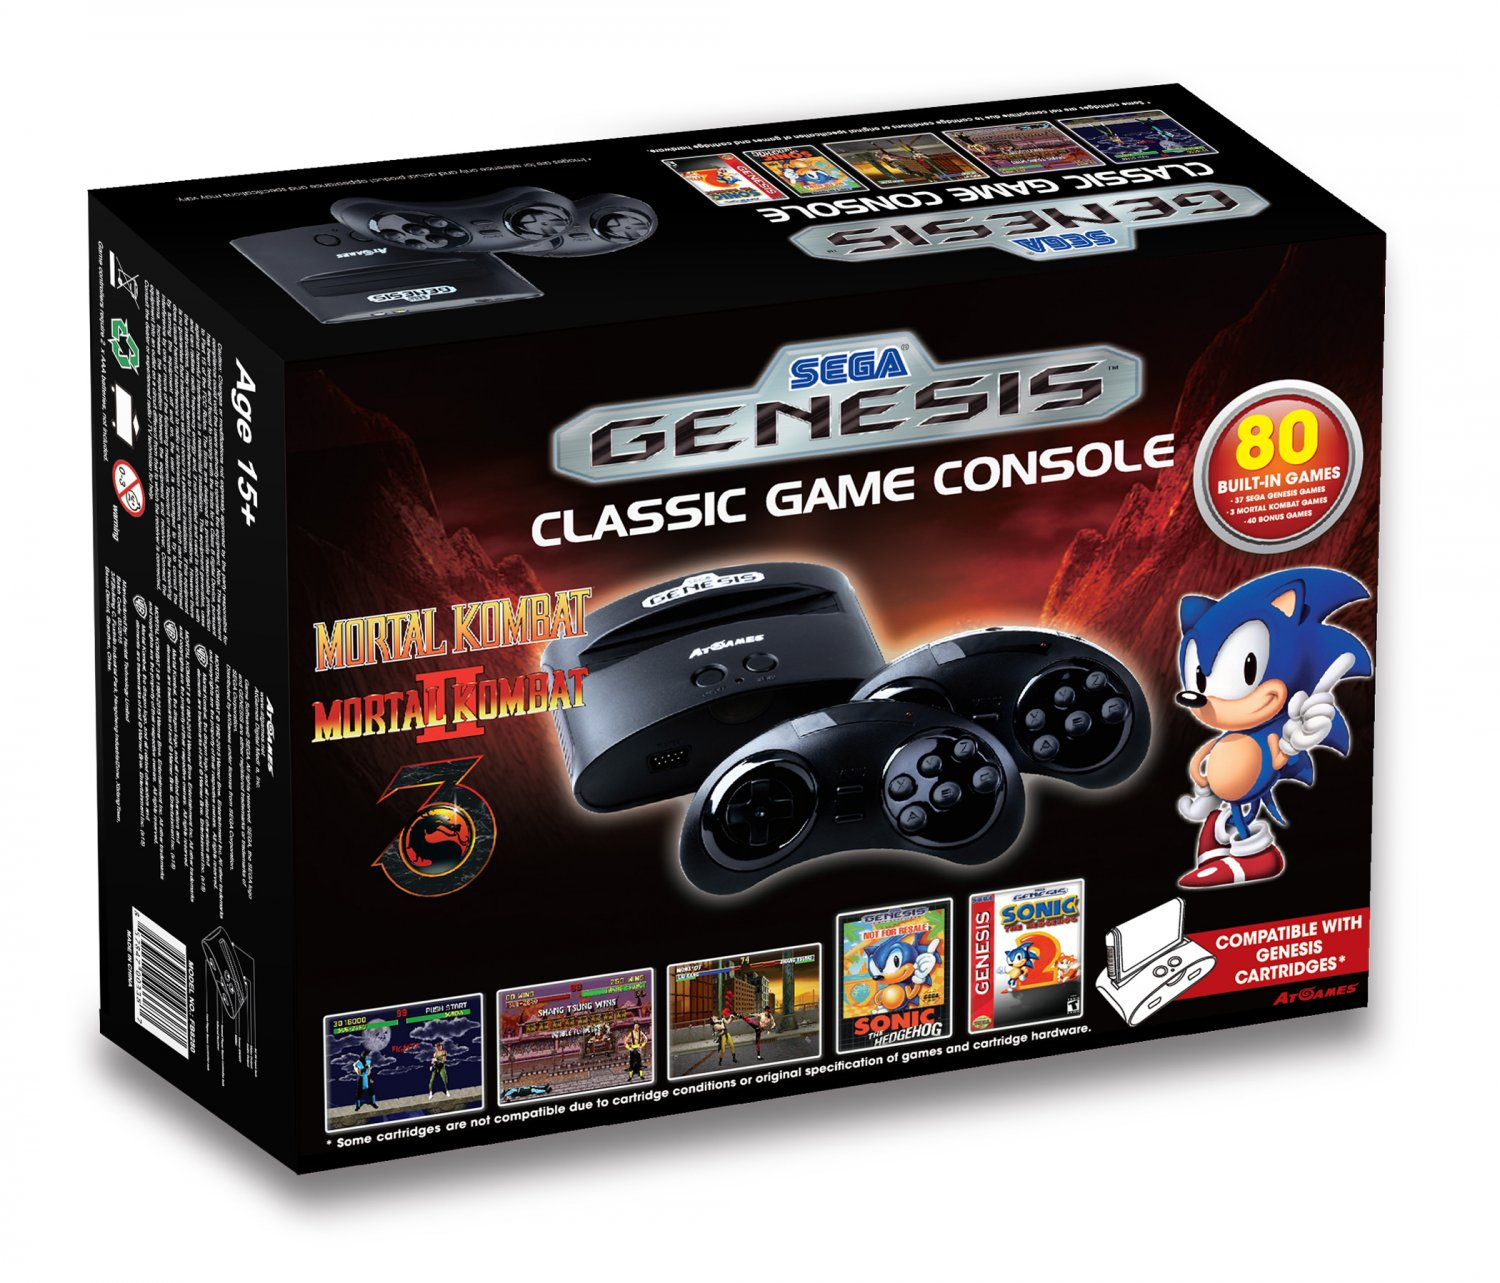 Sega Genesis Classic Game Console 2015 The Official